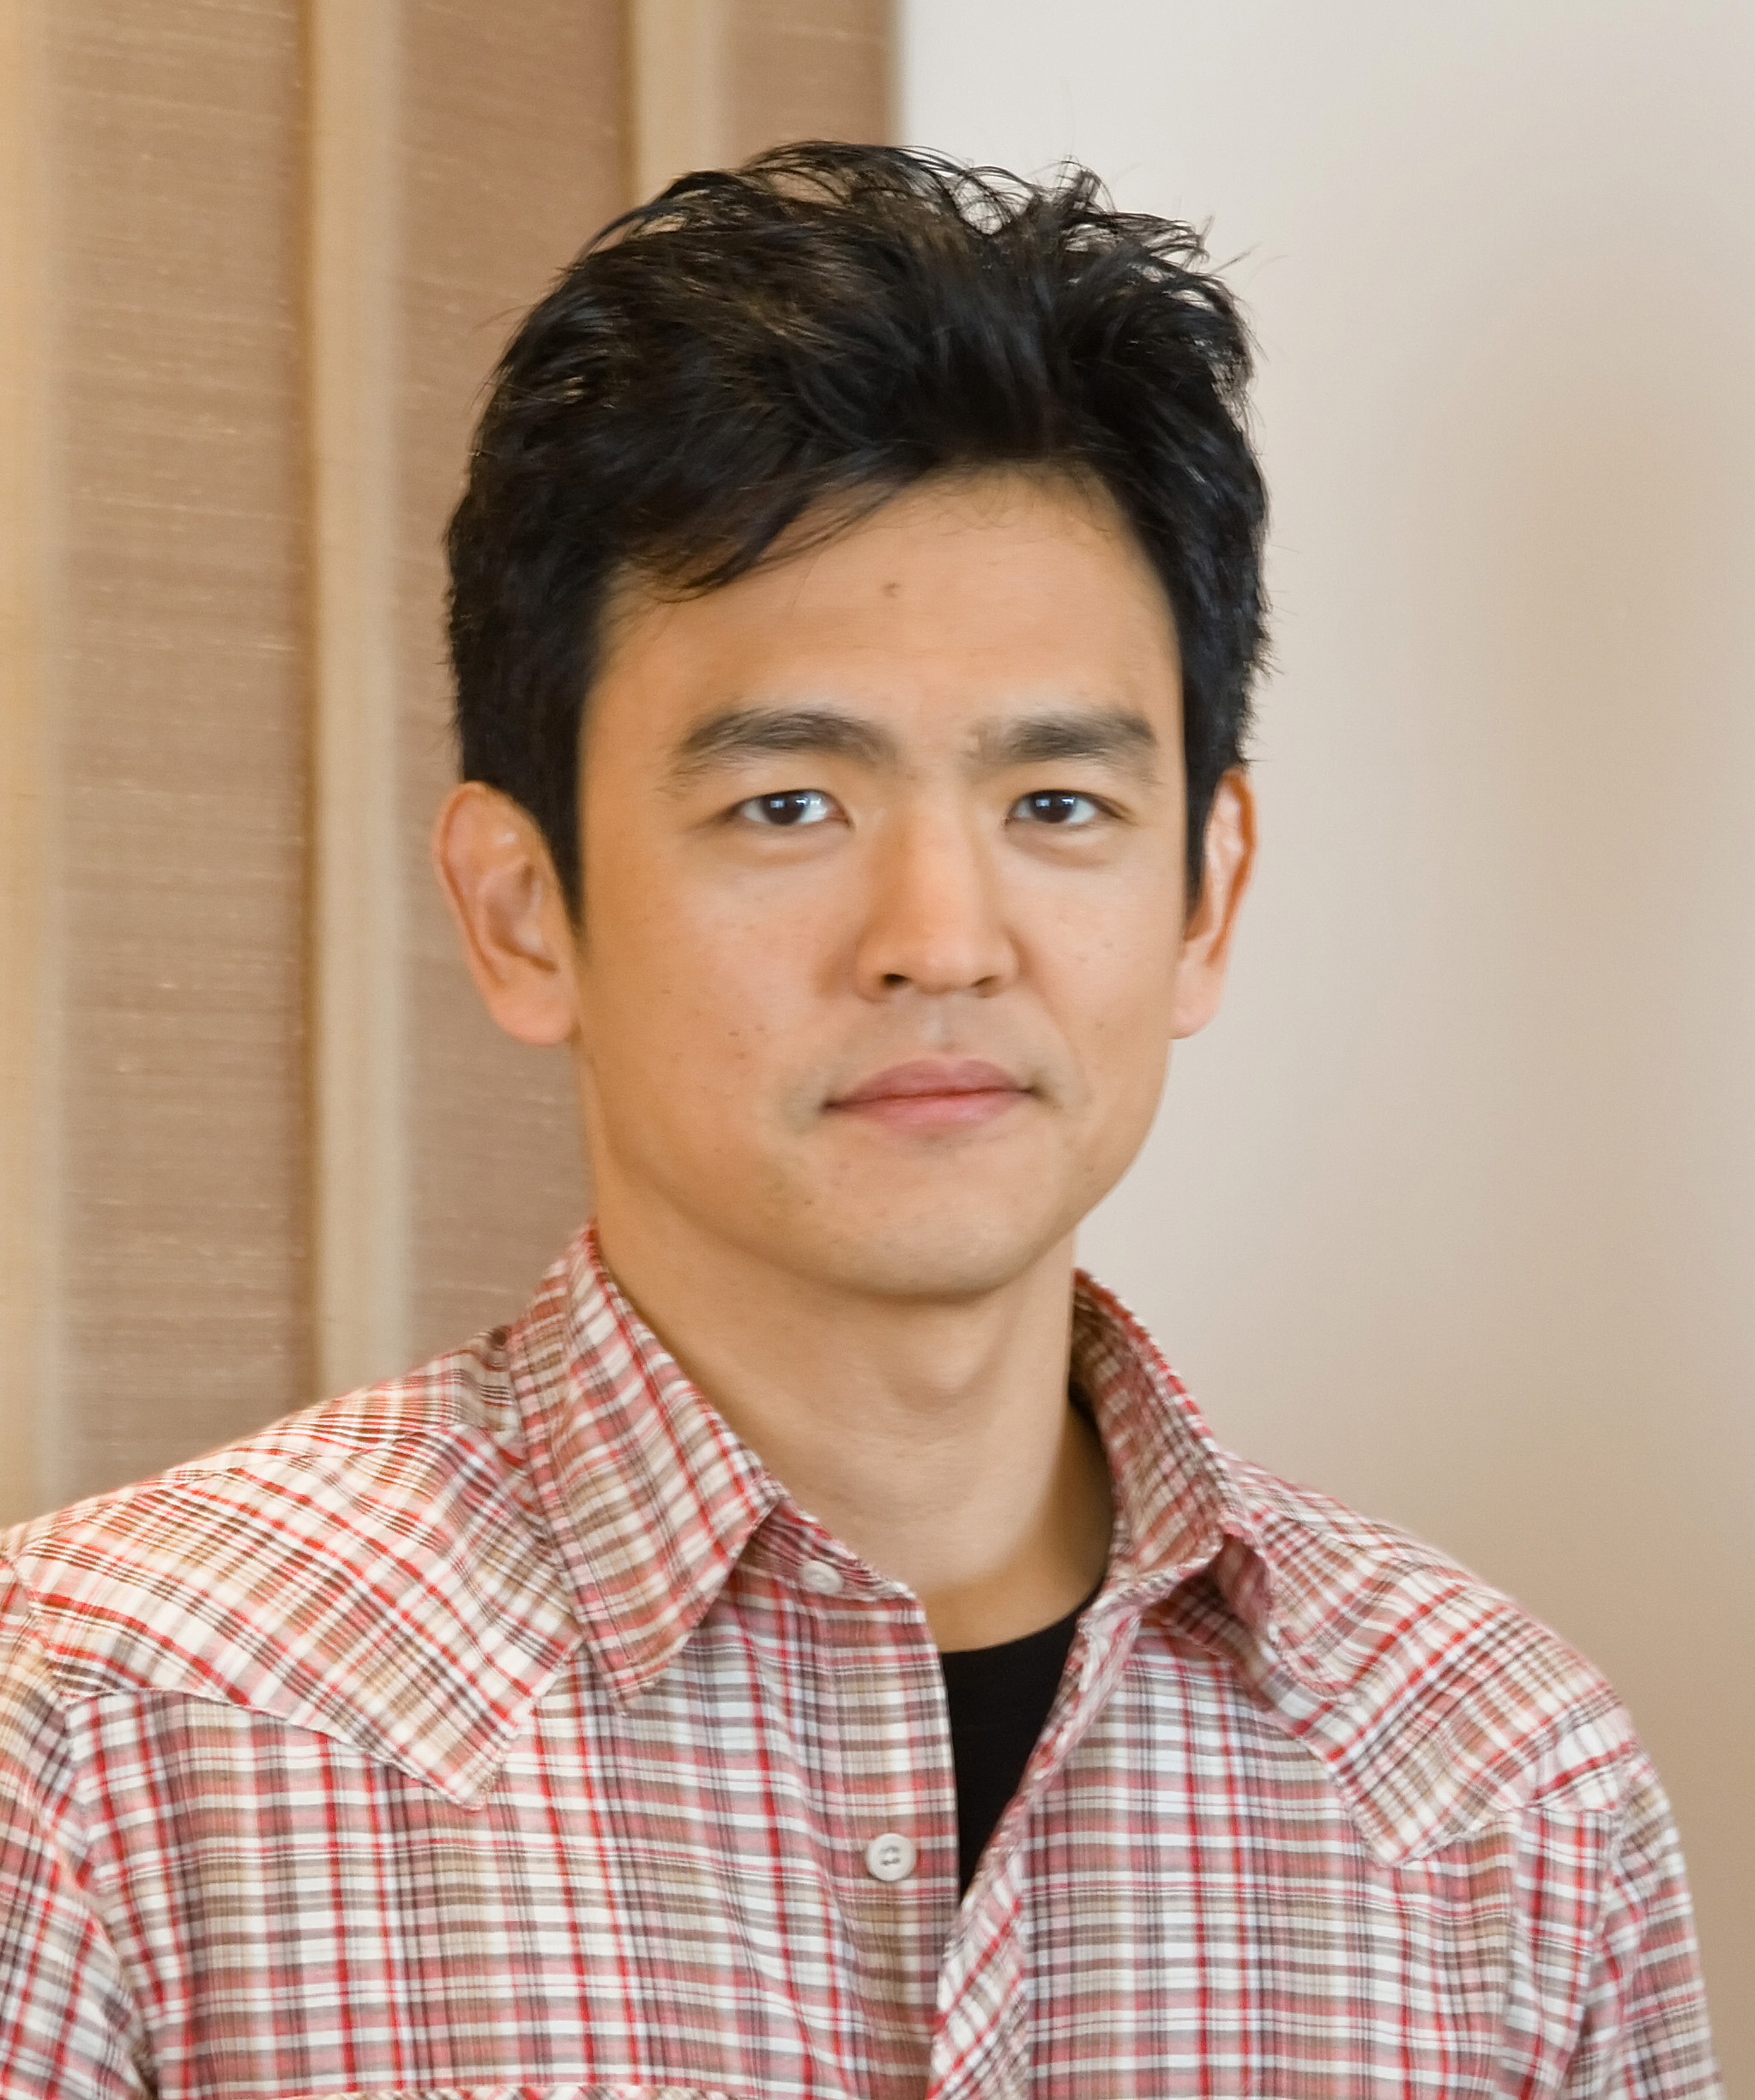 The 45-year old son of father (?) and mother(?), 178 cm tall John Cho in 2018 photo